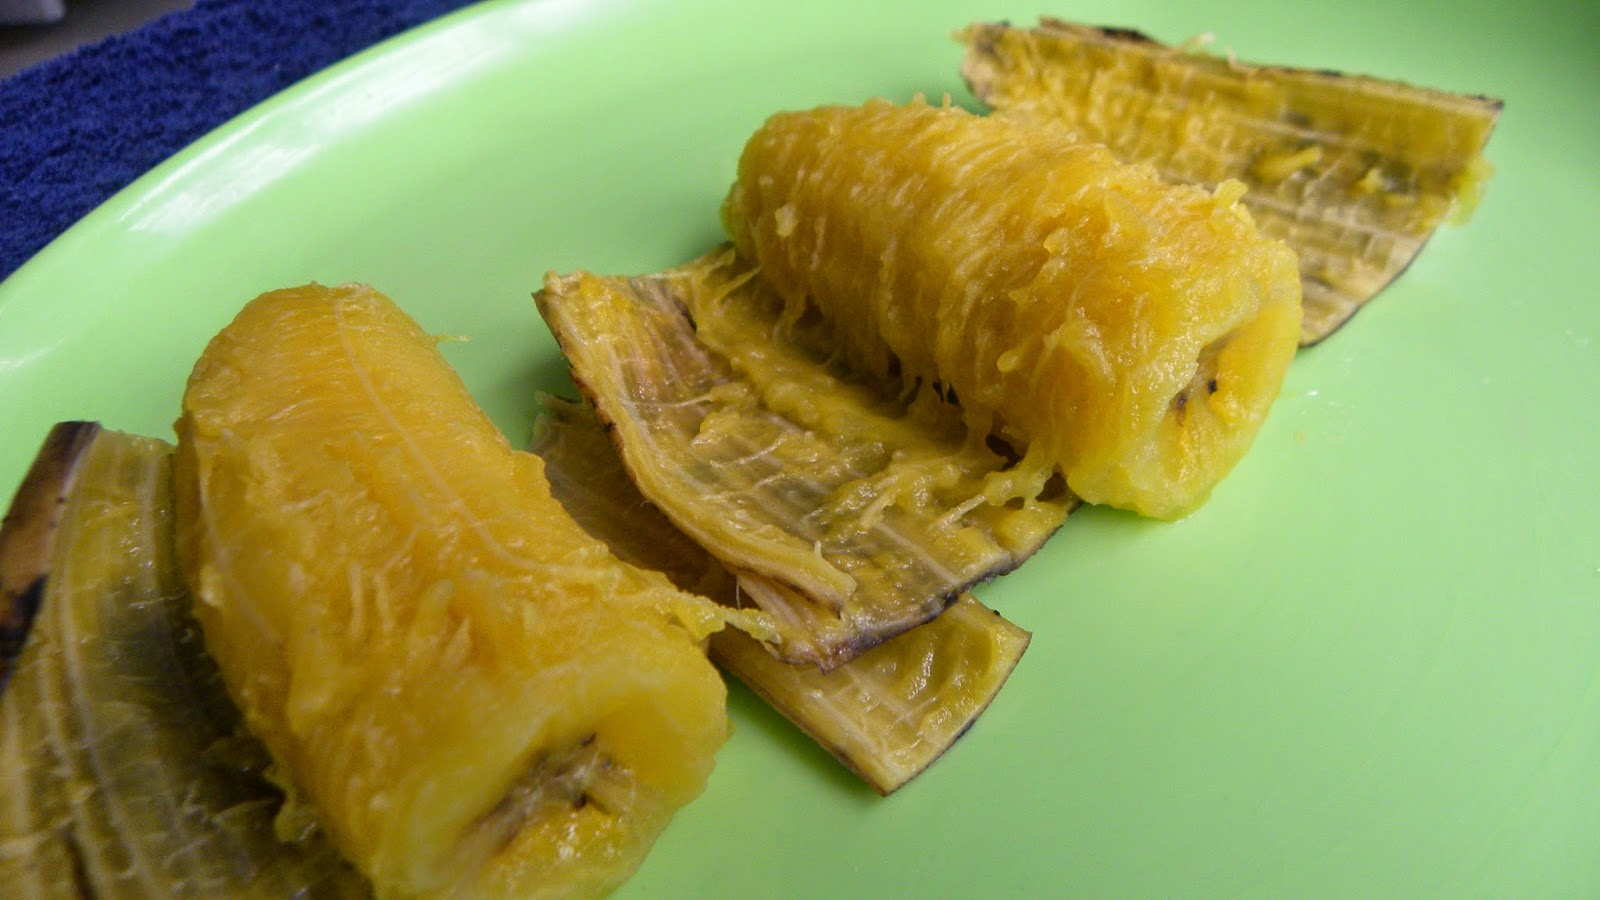 Enjoy sweet plantains fried or steamed anithas kitchen enjoy sweet plantains fried or steamed forumfinder Image collections